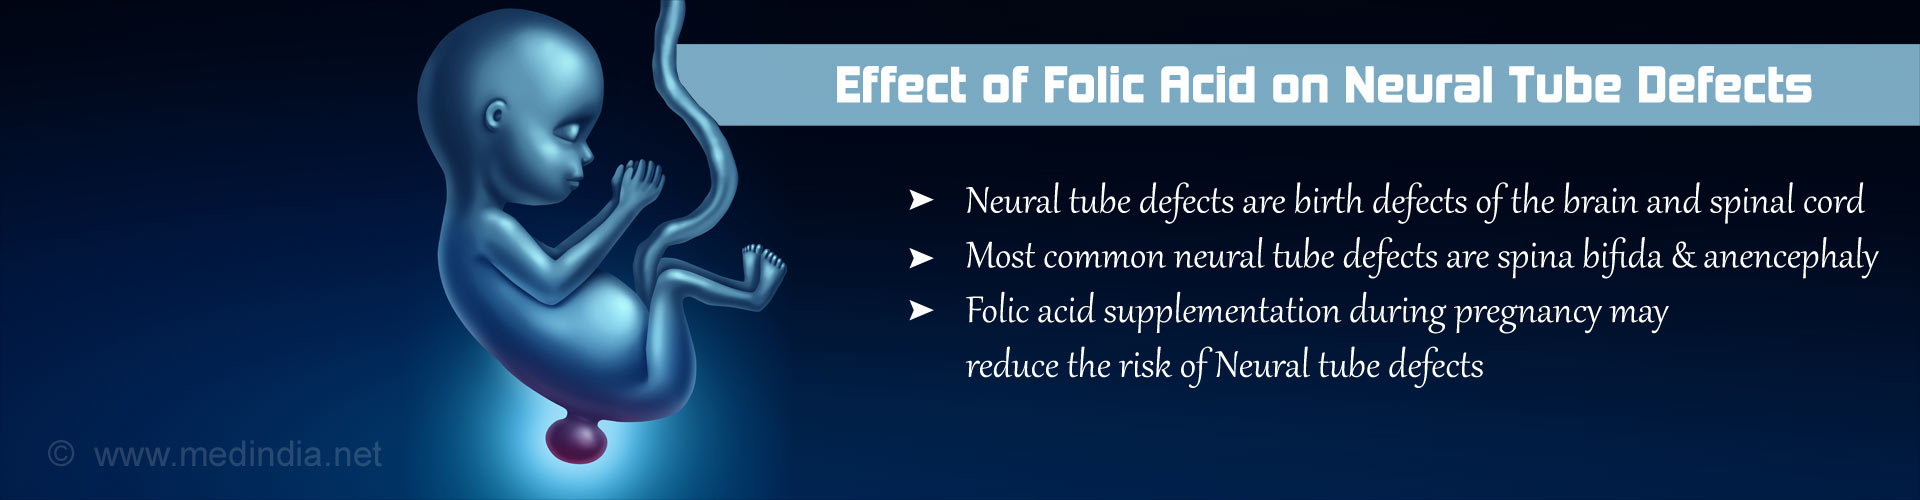 Possible Mechanism of Protective Effect of Folic Acid in Neural Tube Defects